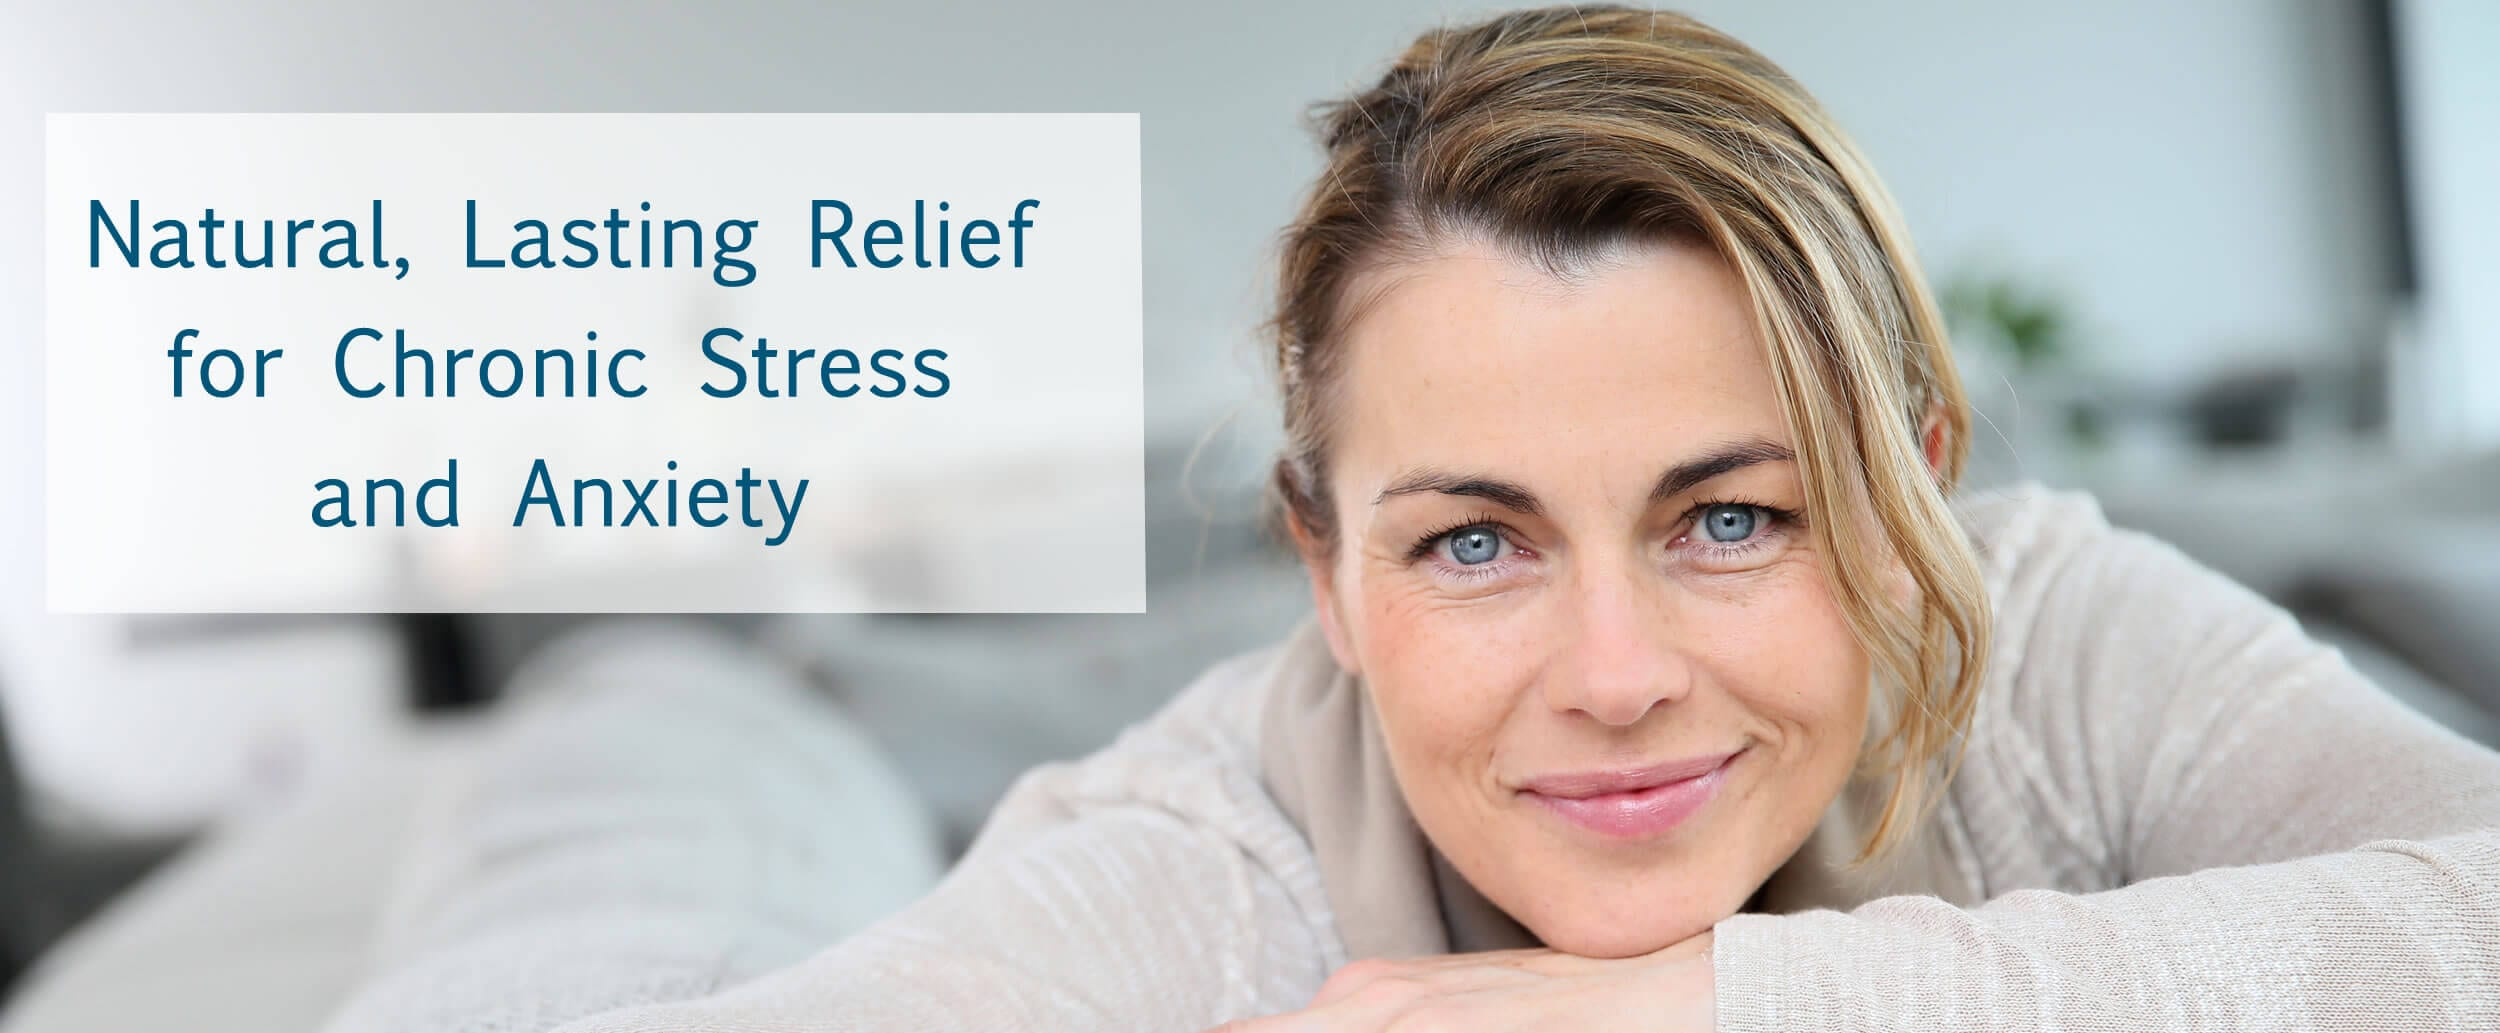 Natural, Lasting Relief for Stress & Anxiety